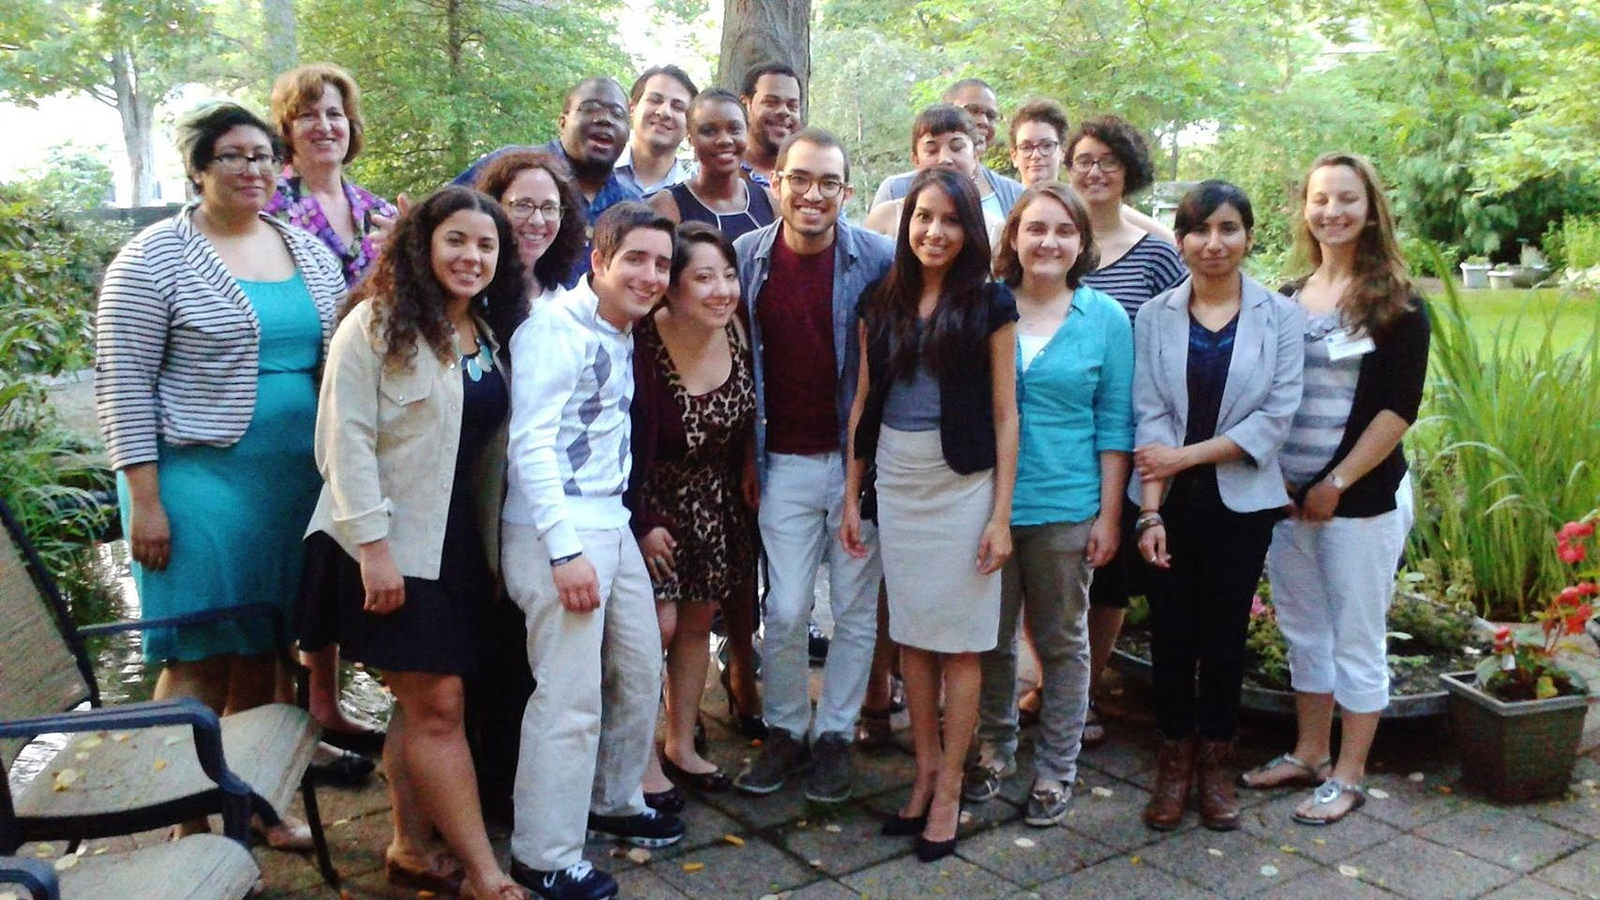 2014 Philosophy in Inclusive Key Summer Institute (PIKSI) students via Flickr Penn State CC